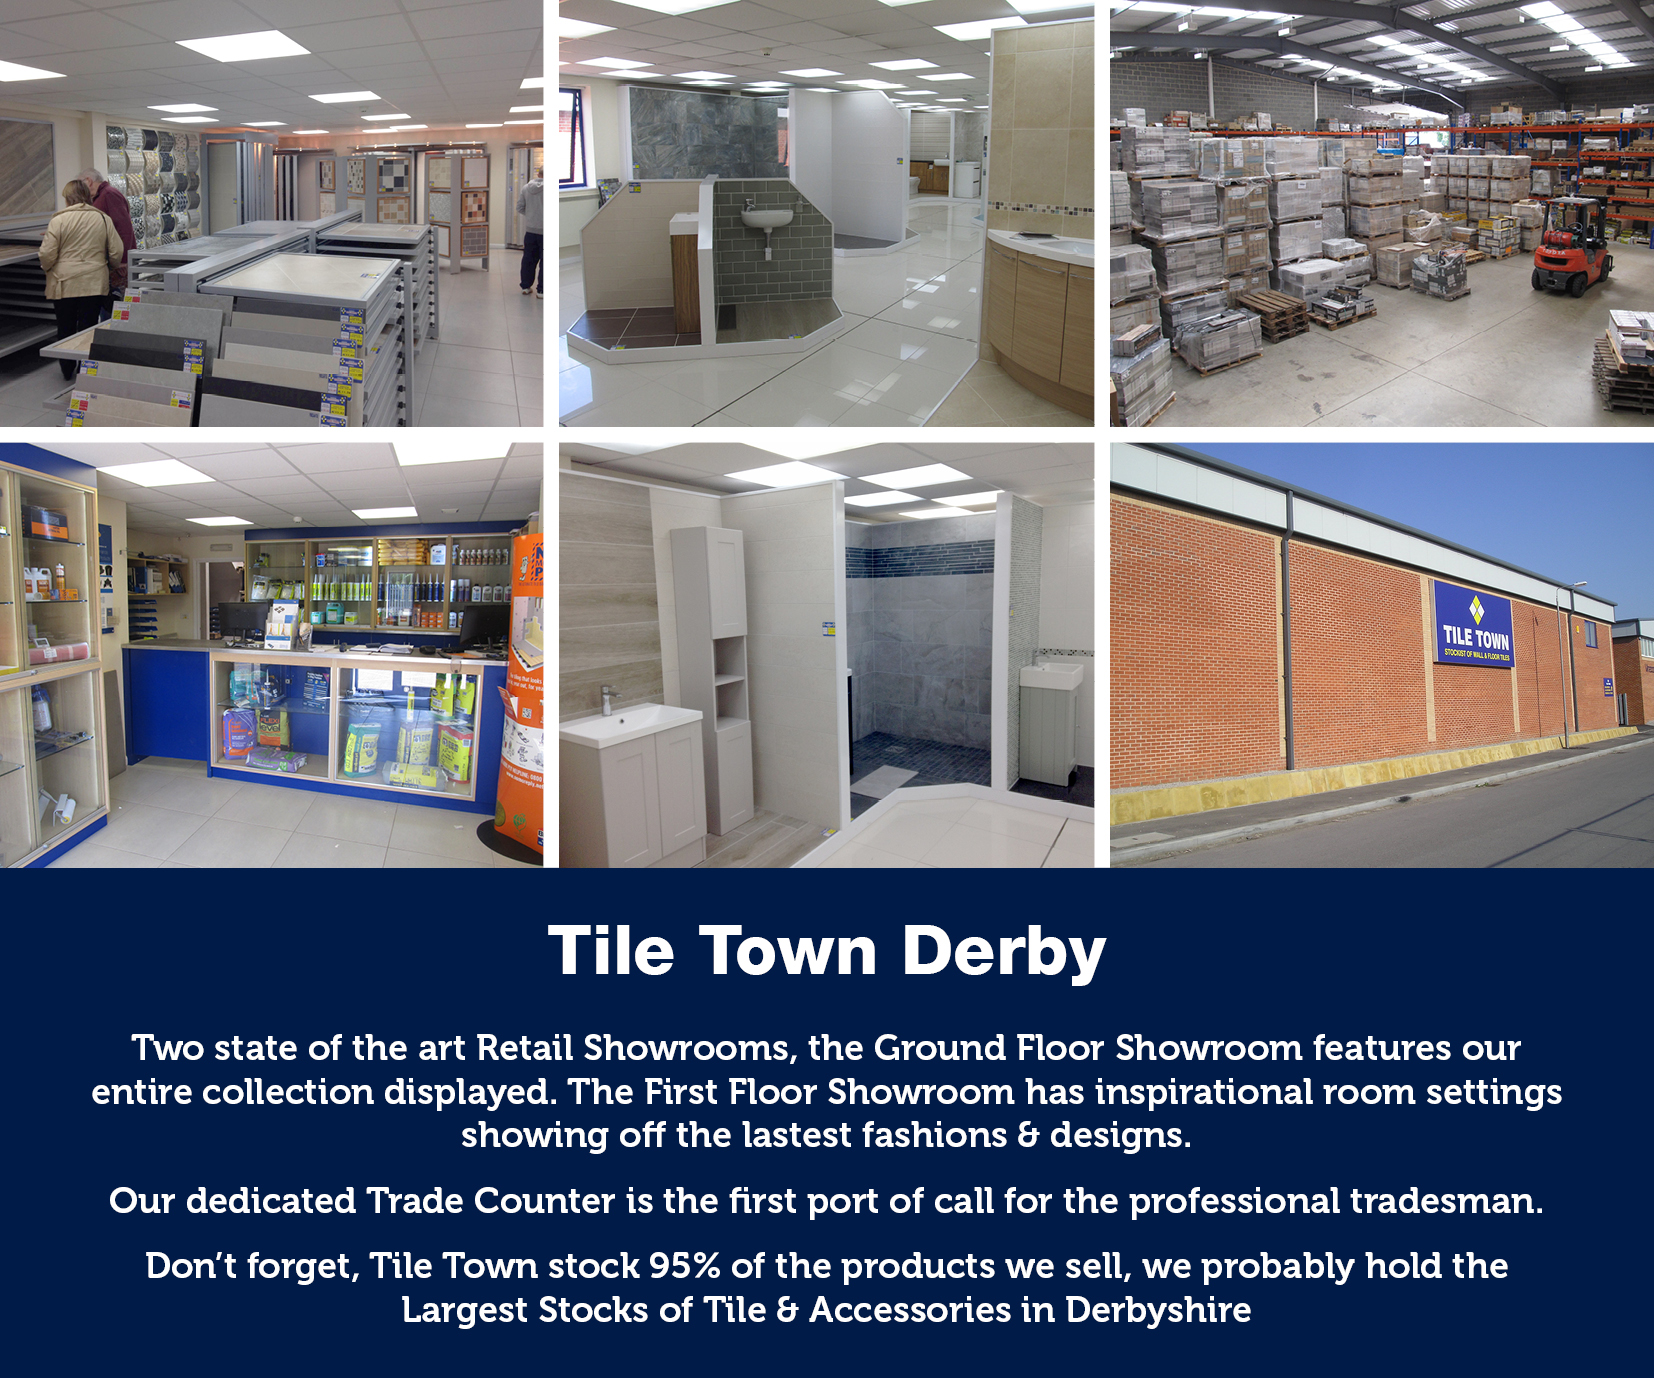 About Tile Town the East and West Midlands Leading Tile Supplier